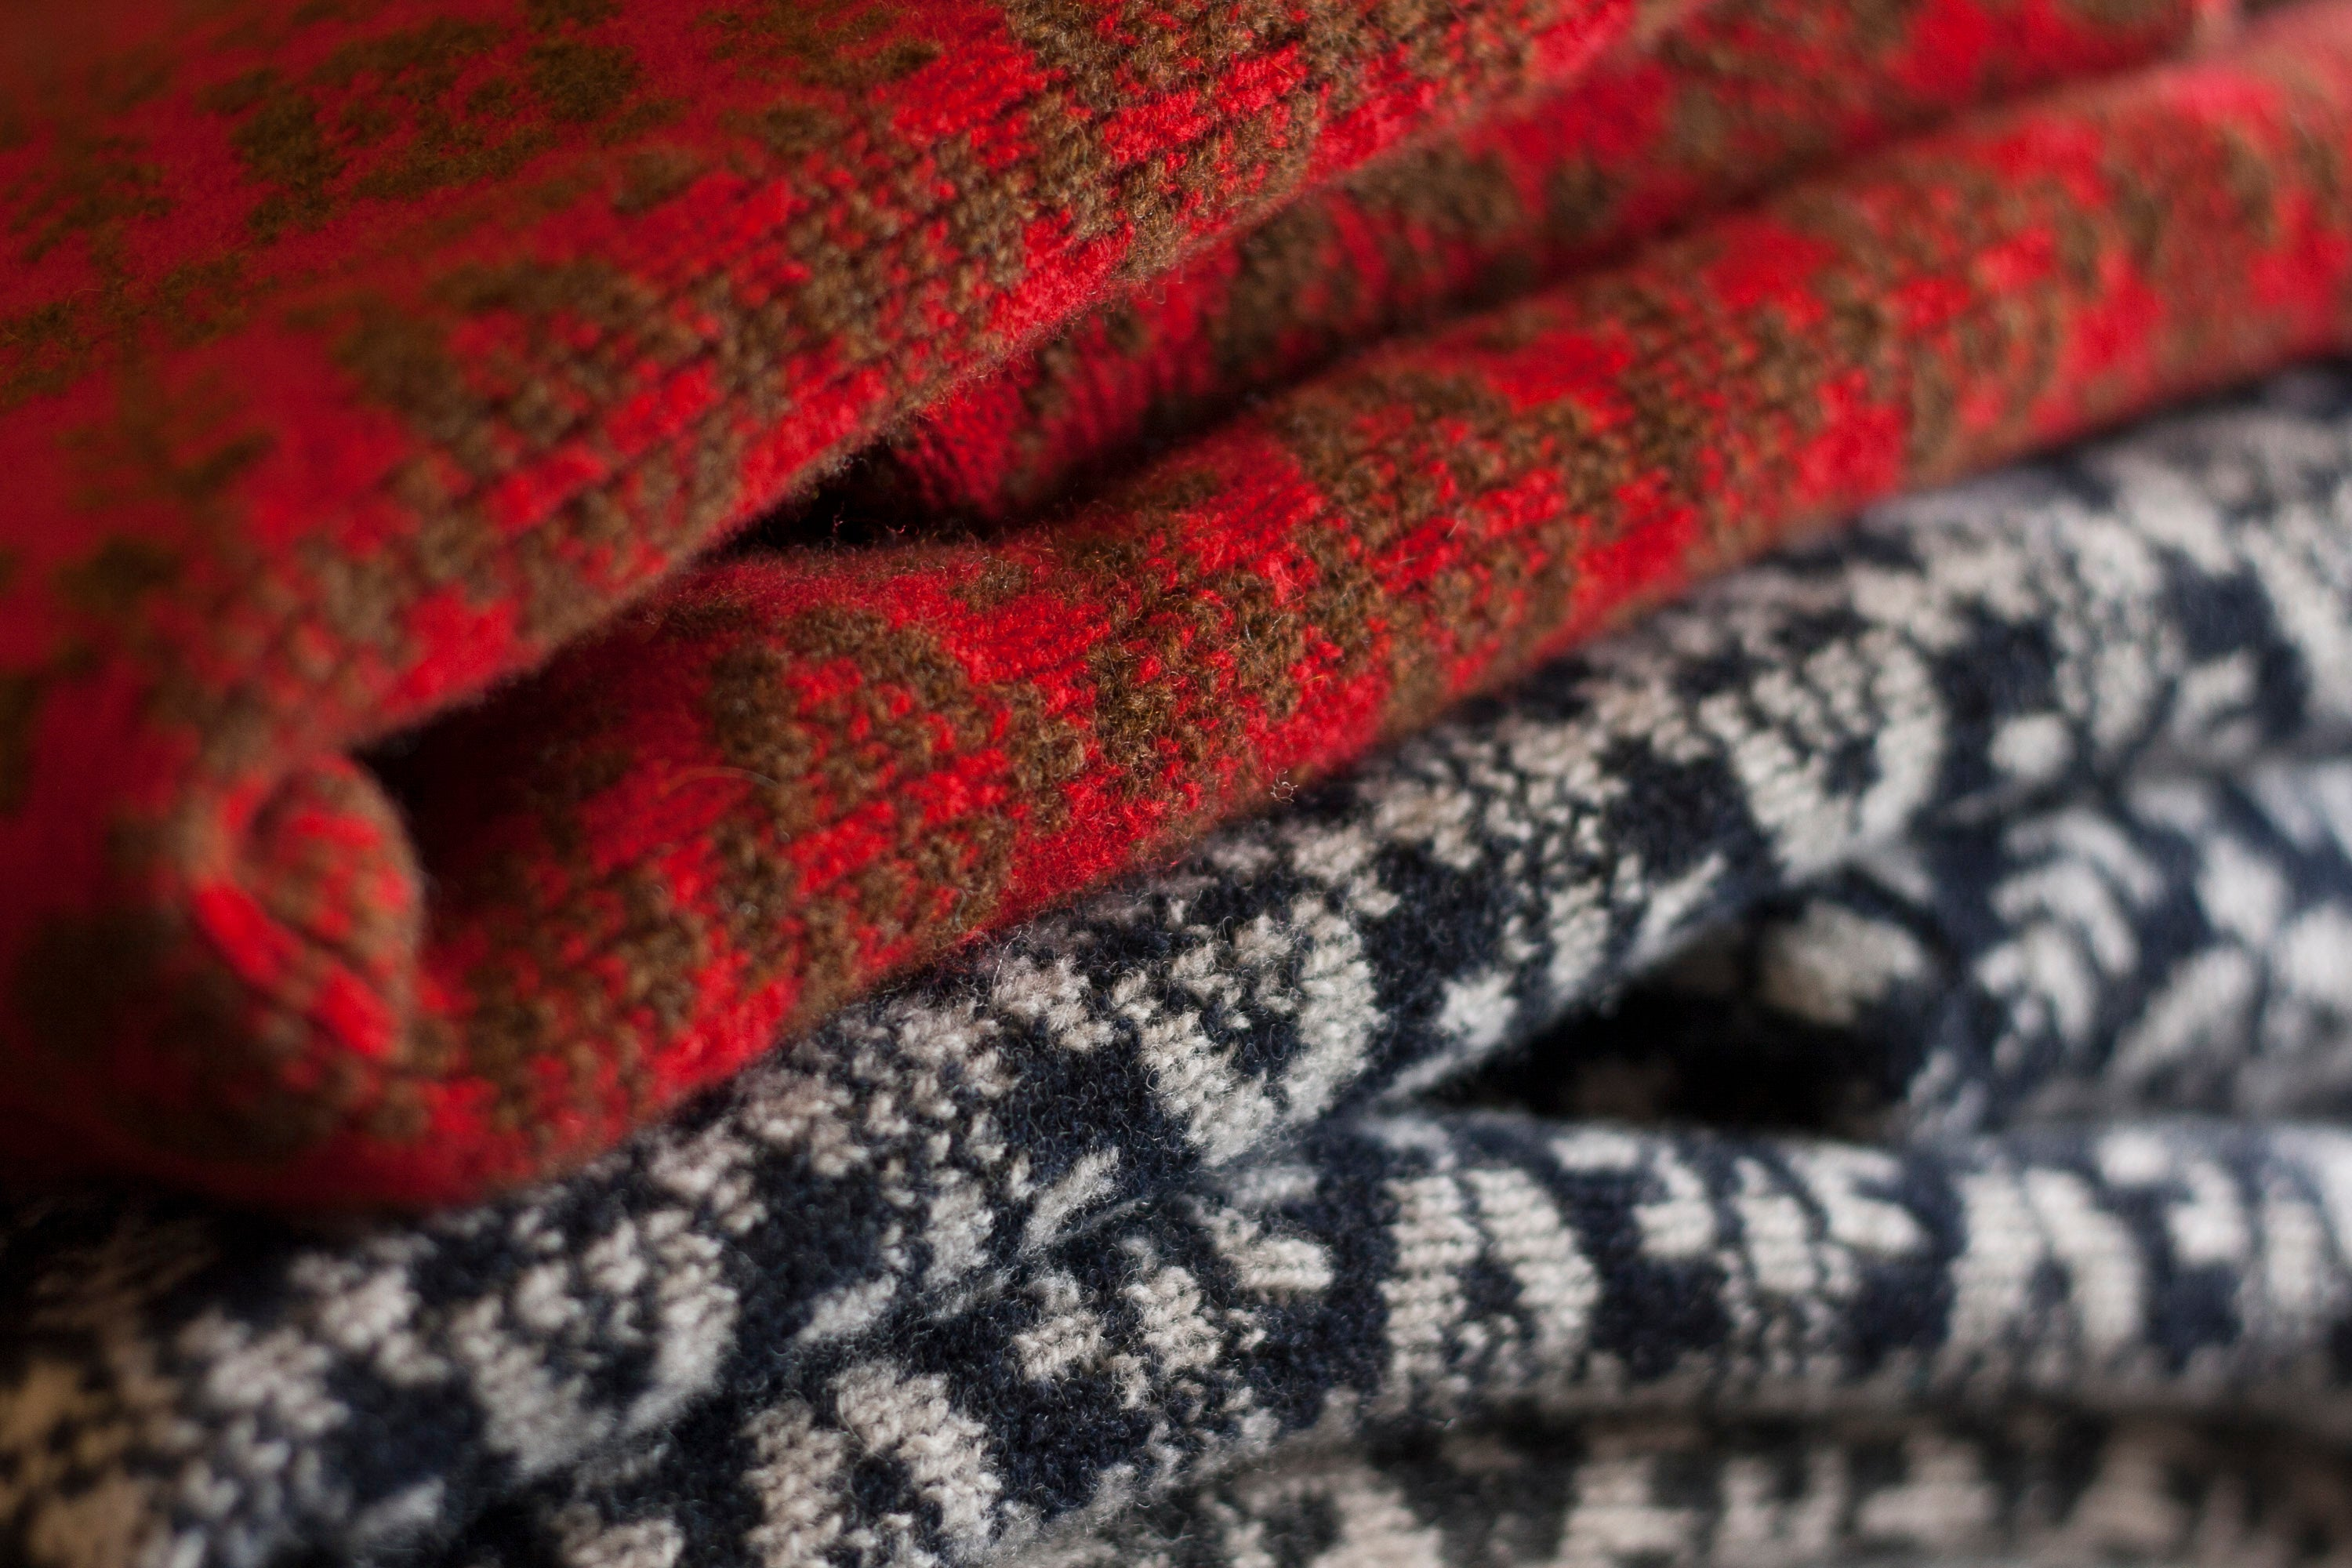 Close up of Fair Isle jumpers at the Nielanell studio, Hoswick, Shetland. One jumper in red and brown, the other in charcoal and very pale grey